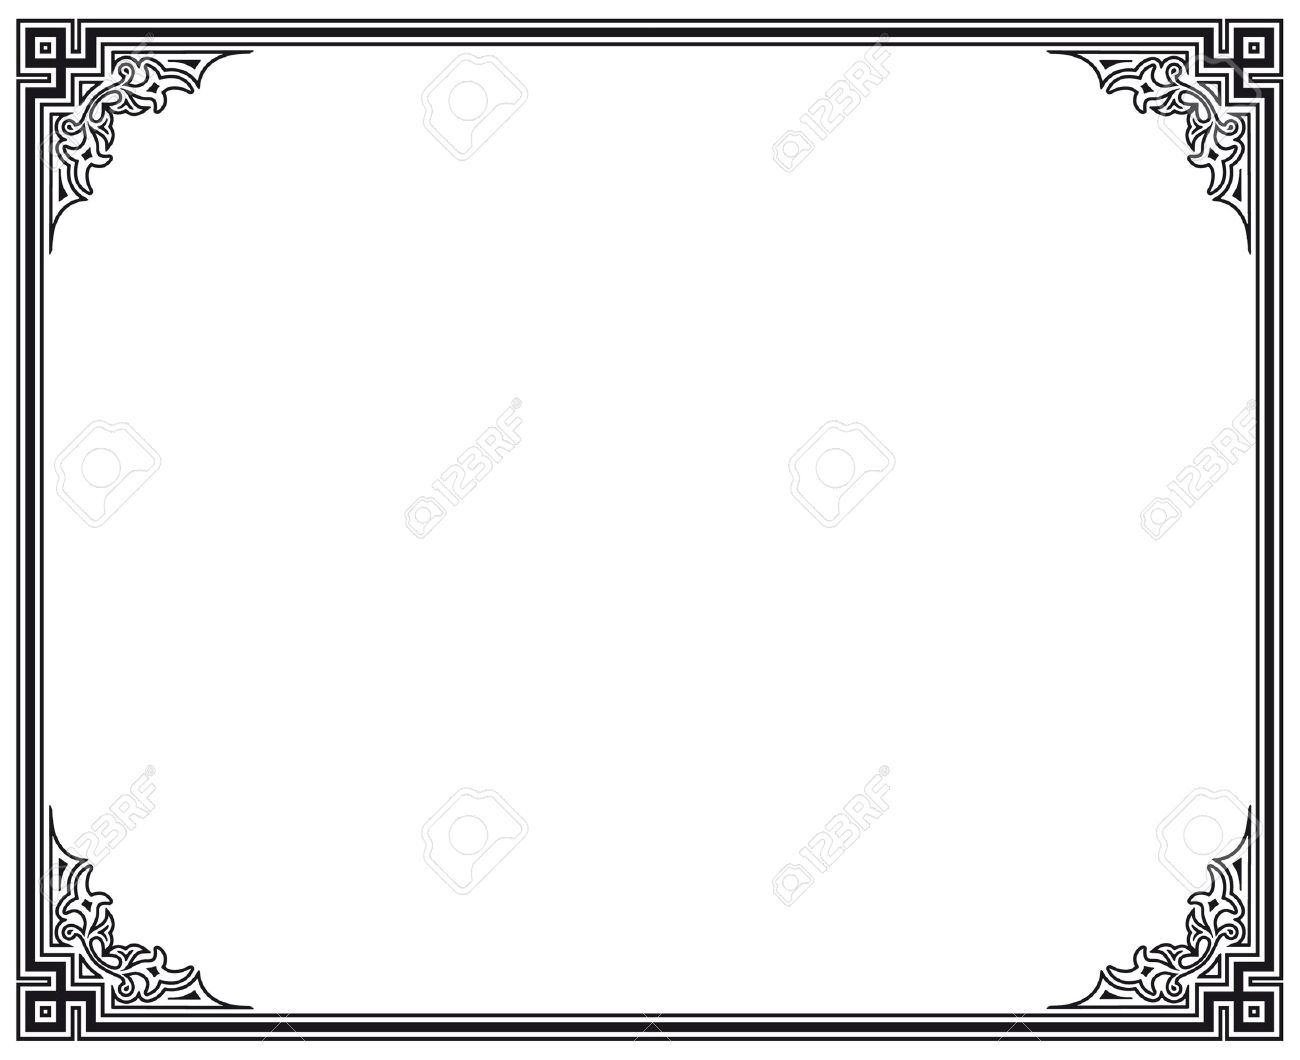 Black And White Vector Frame Royalty Free Cliparts, Vectors, And ...